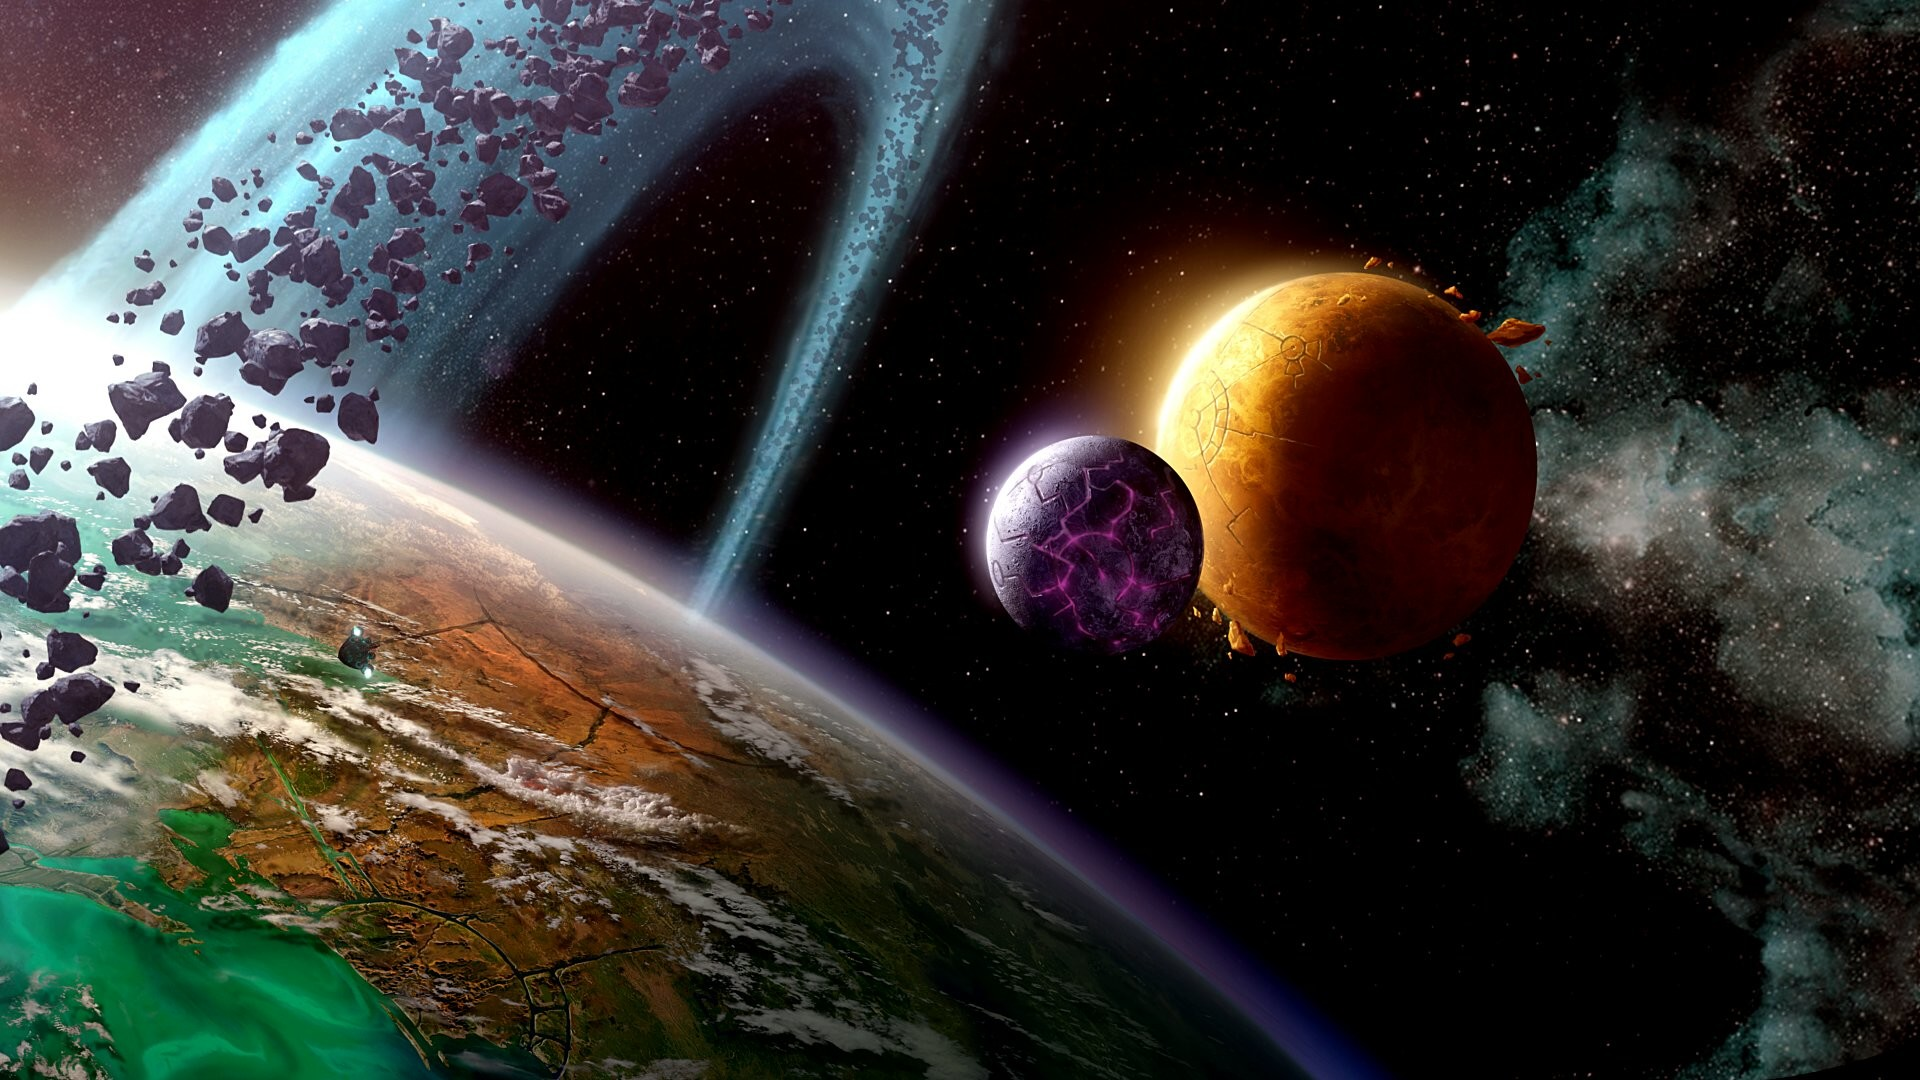 Space Planets Wallpaper ·① WallpaperTag